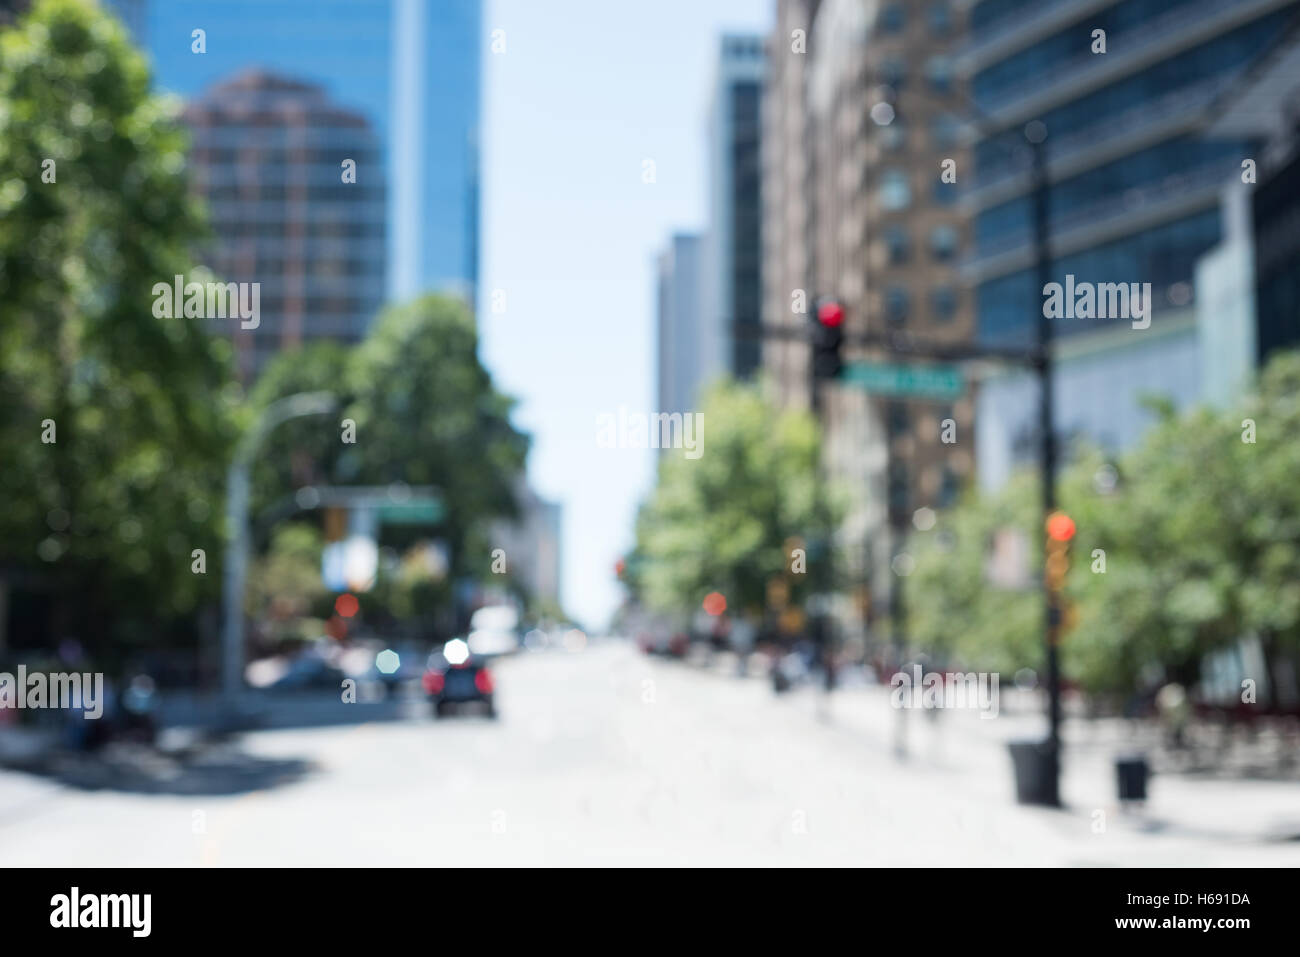 Blur view of a modern city - Stock Image